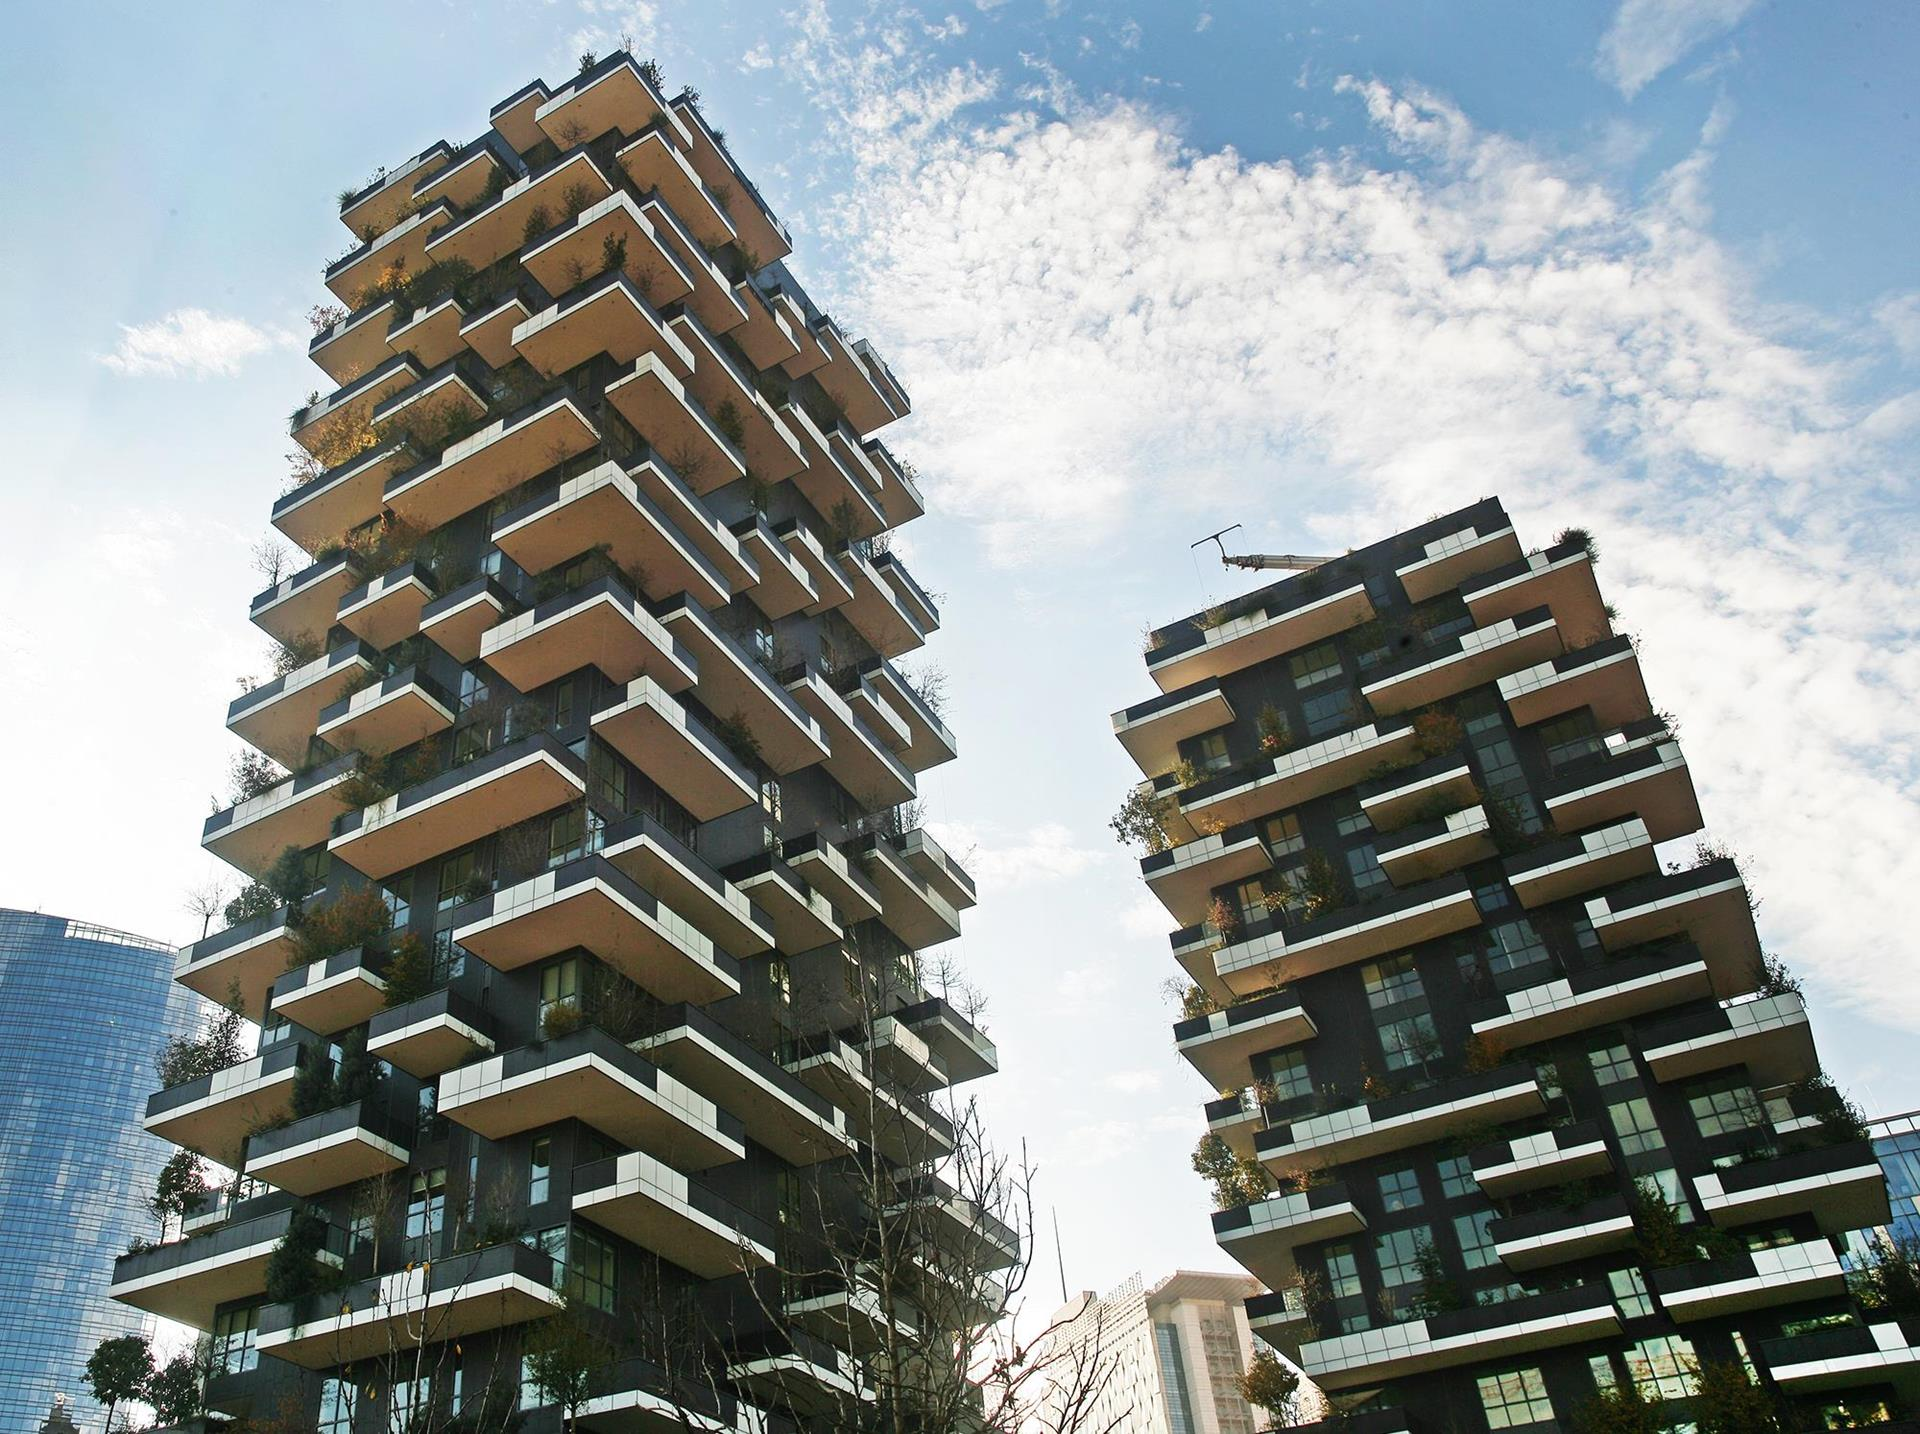 Bosco verticale: Photo 1